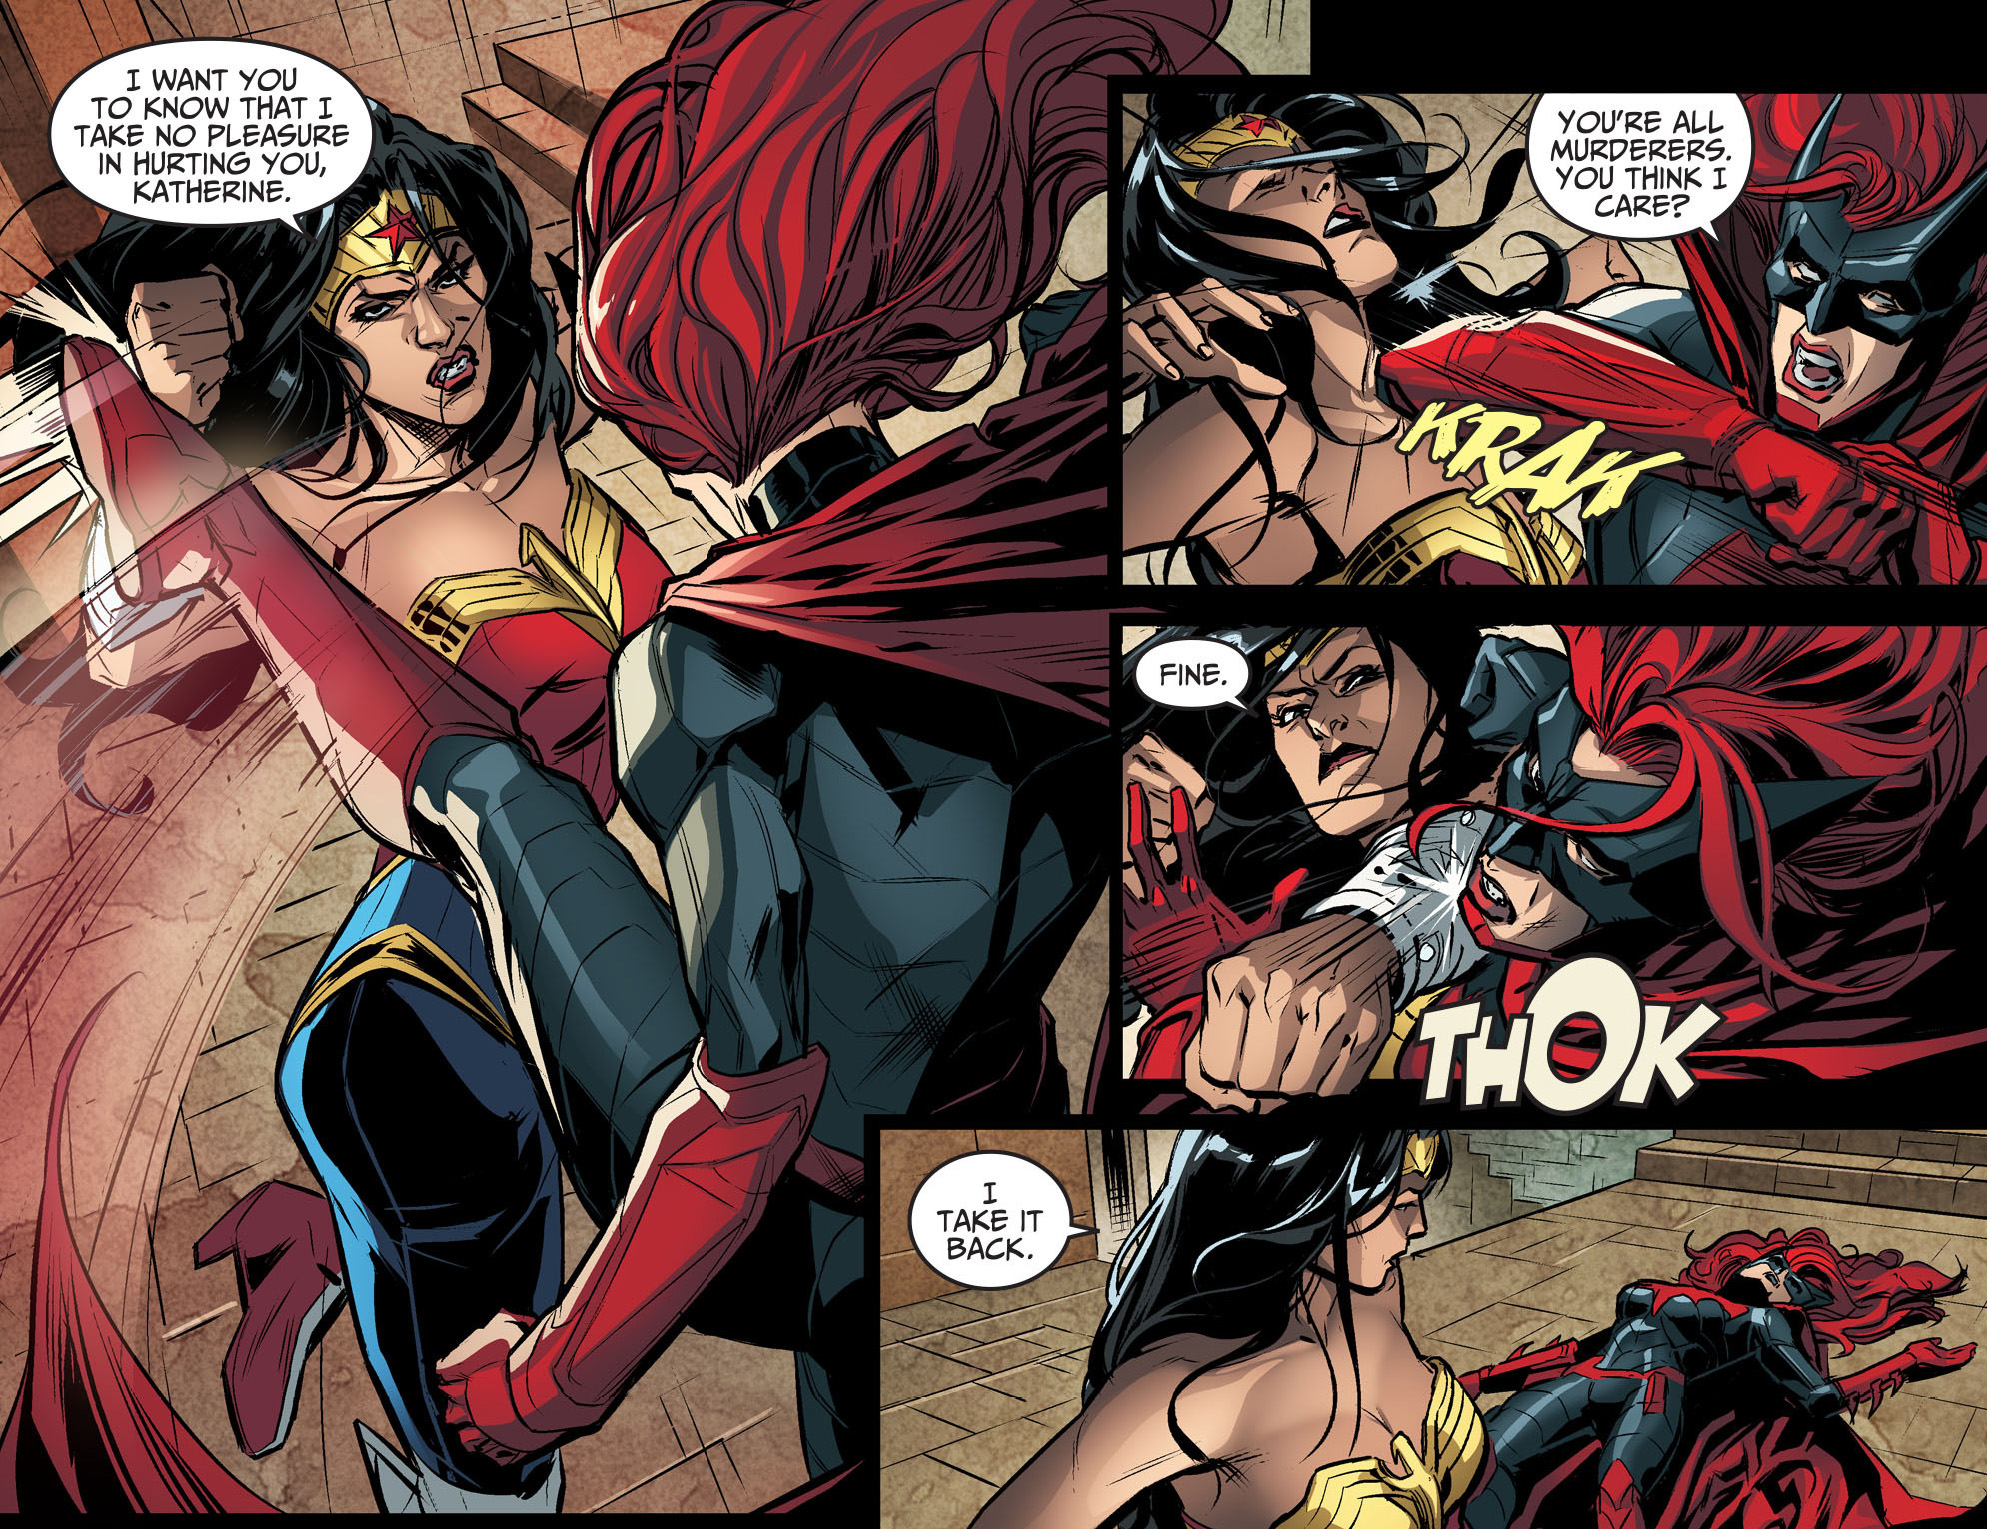 wonder woman vs batwoman